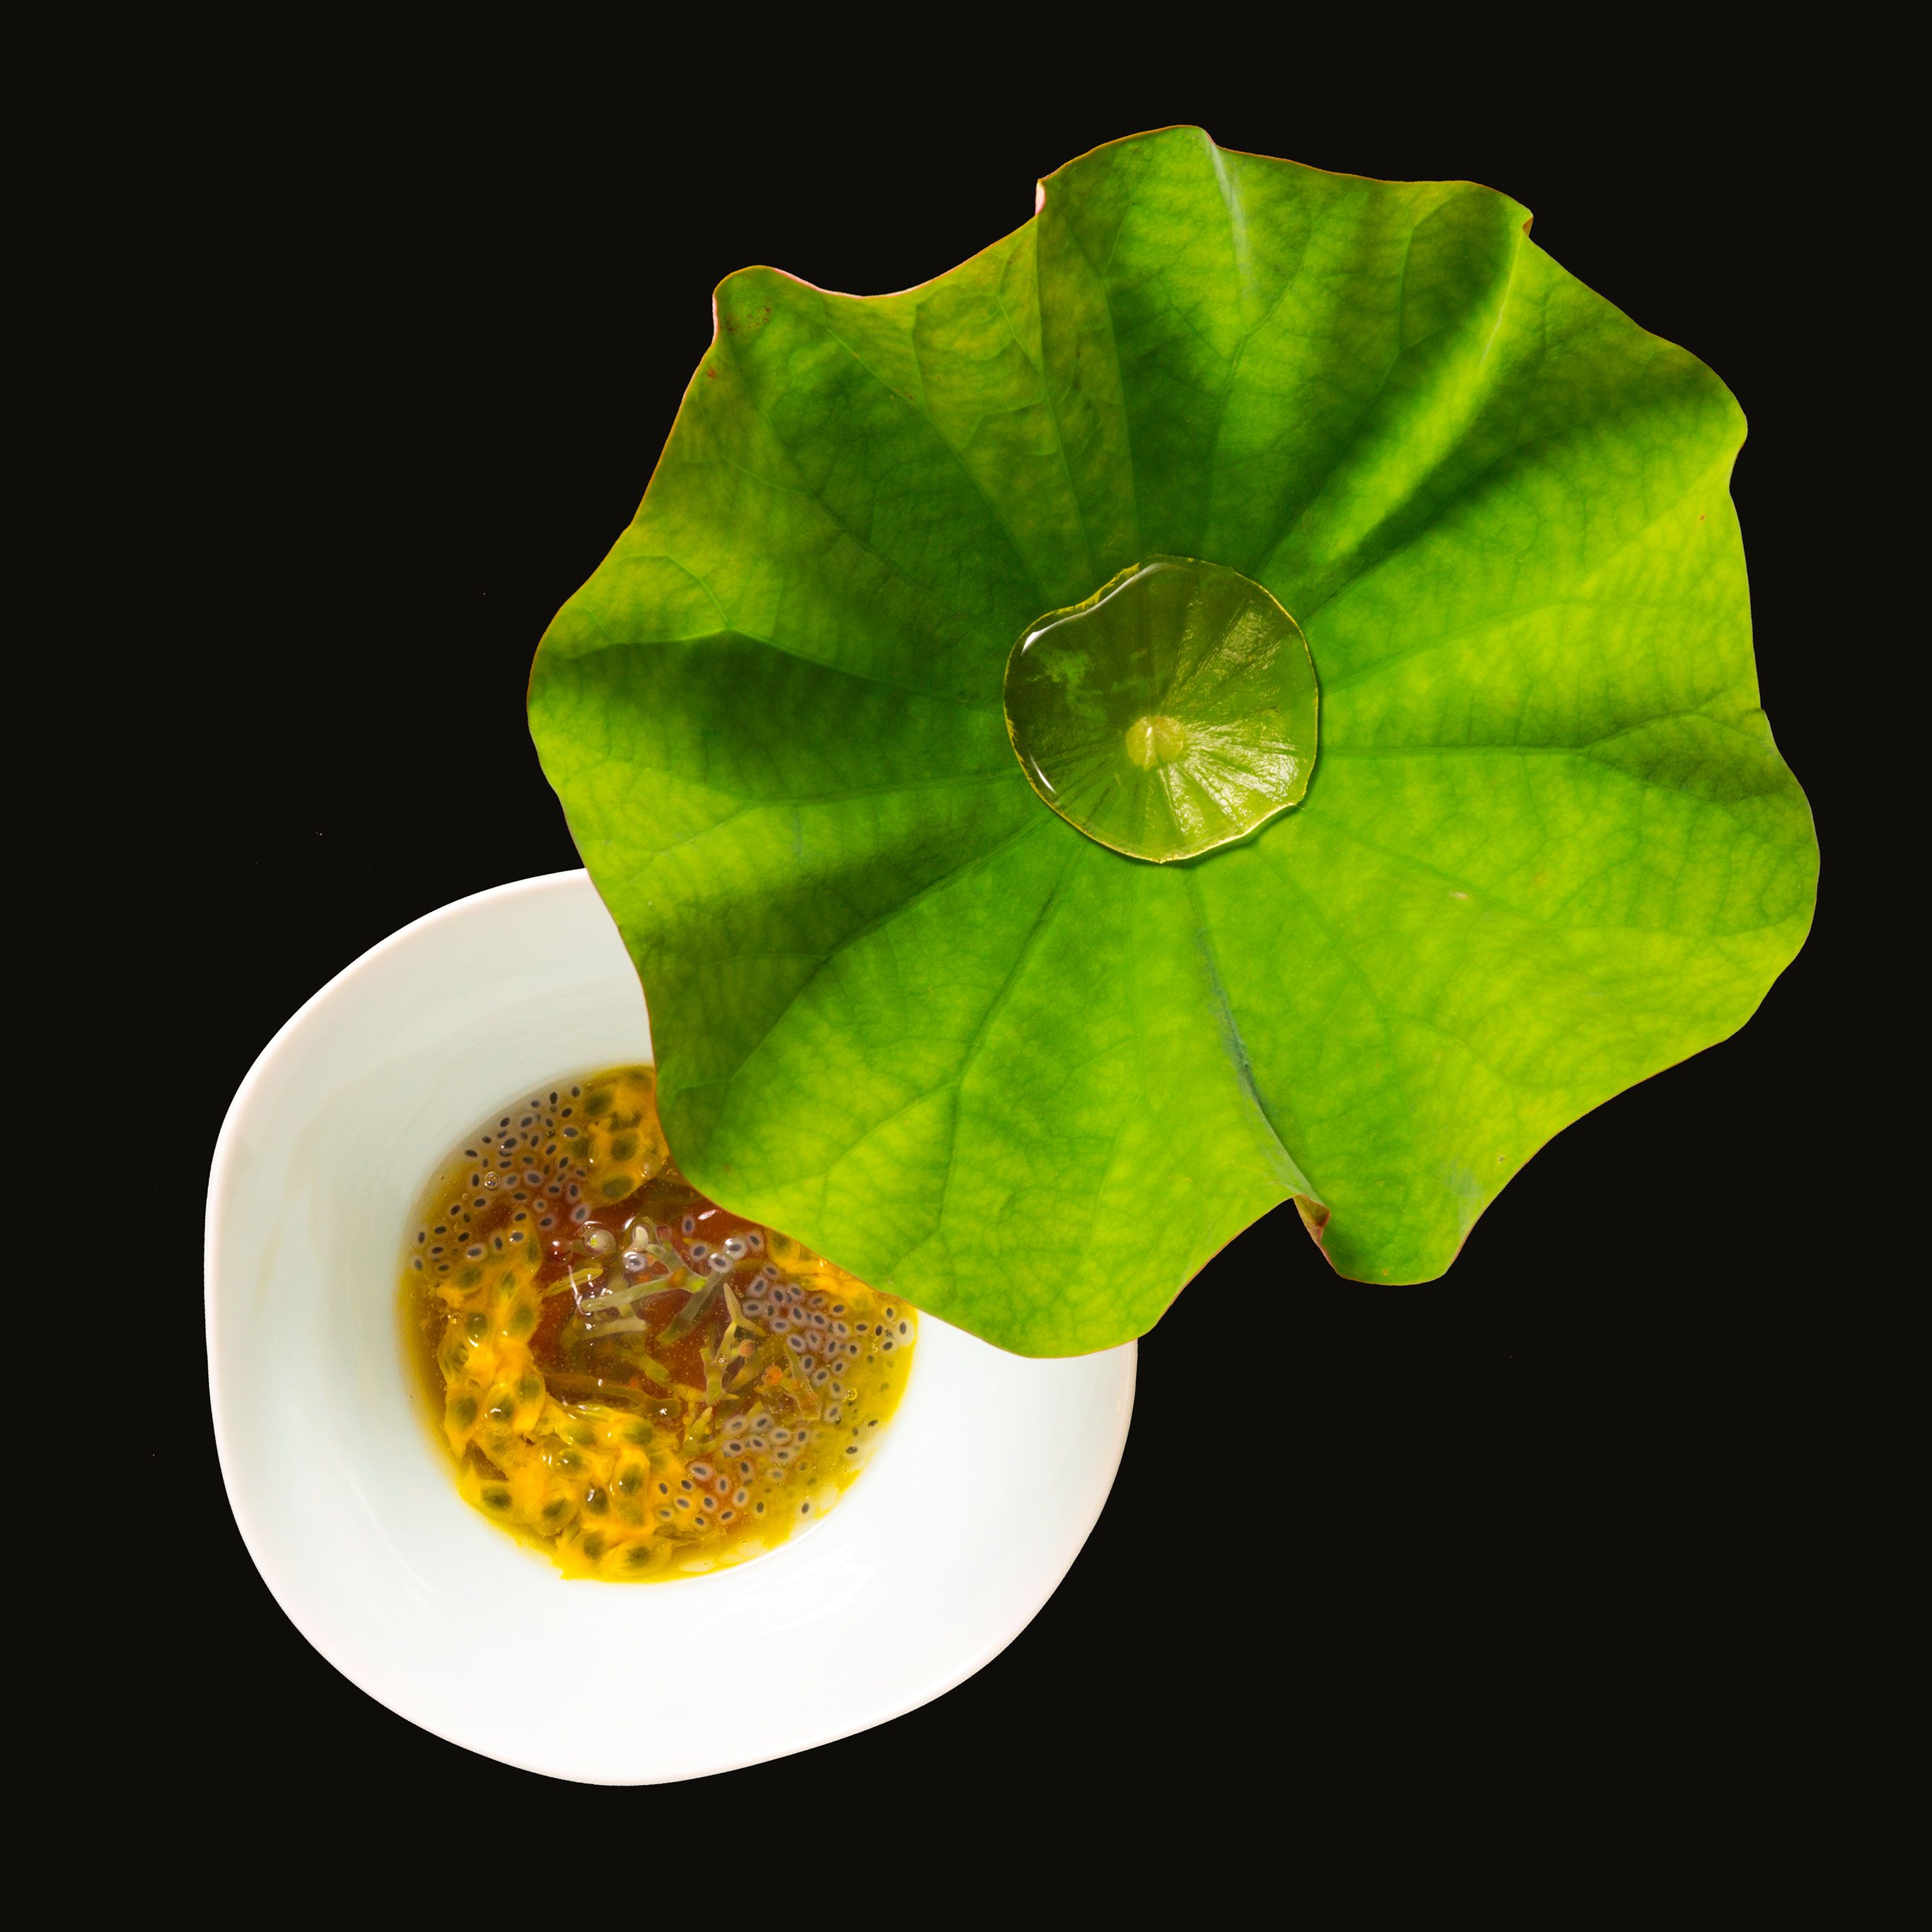 A recipe of Den which came 11th place at the World's 50 Best Restaurants 2019—the highest among all Japanese restaurants that participated. The dewdrop on the lotus leaf situated on the plate, is broth. Vegetables of the season such as junsai (water shield) are beautifully presented—to be enjoyed with broth on the lotus leaf.